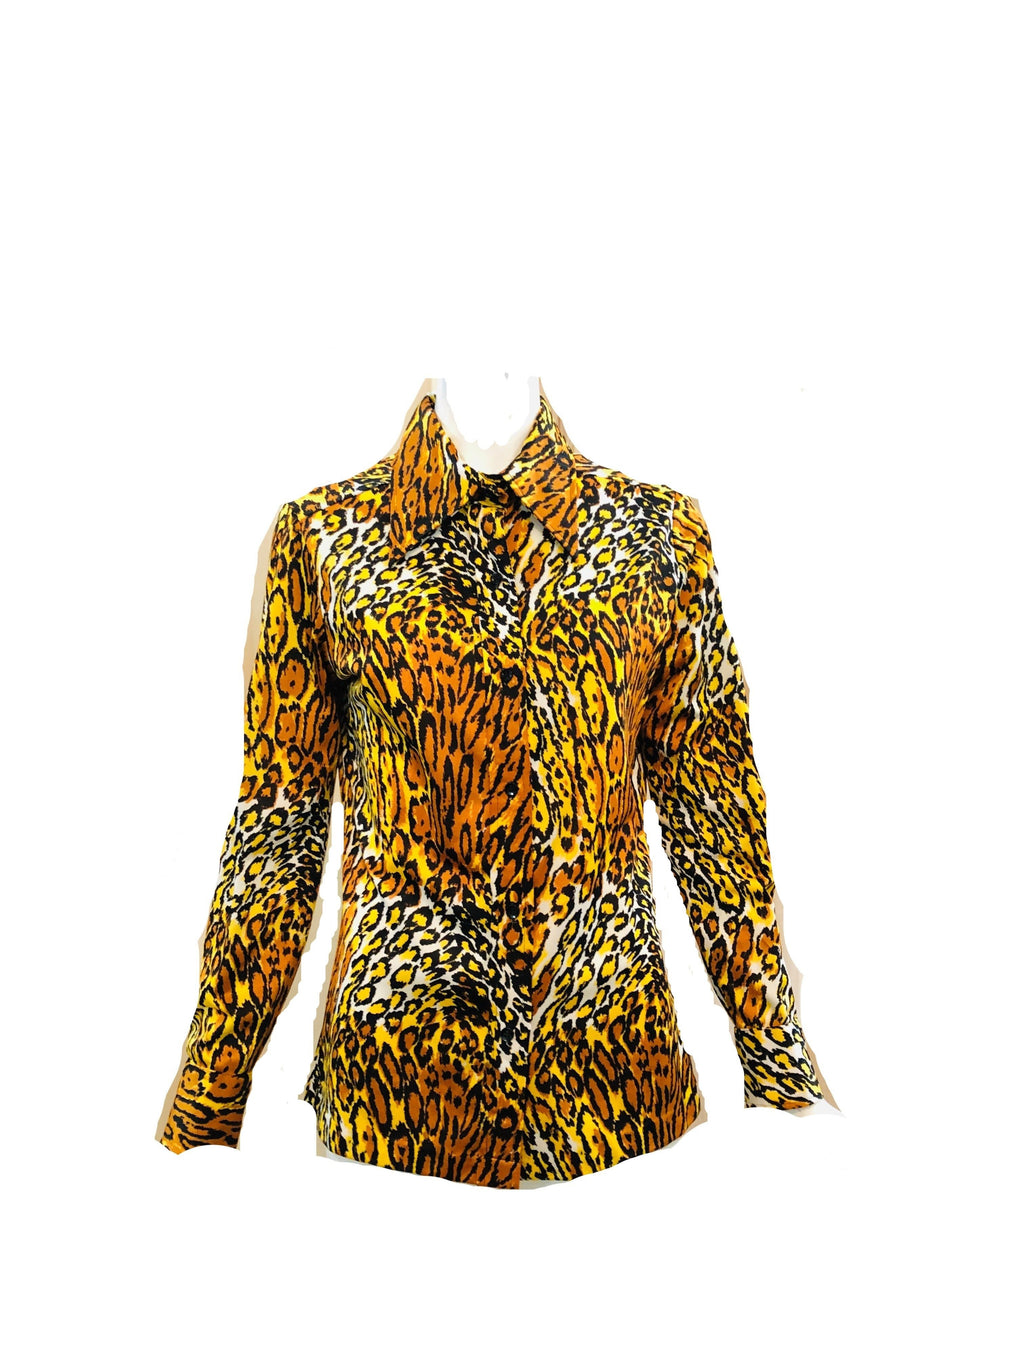 70s Leopard Print Poly Disco Shirt FRONT 1 of 4